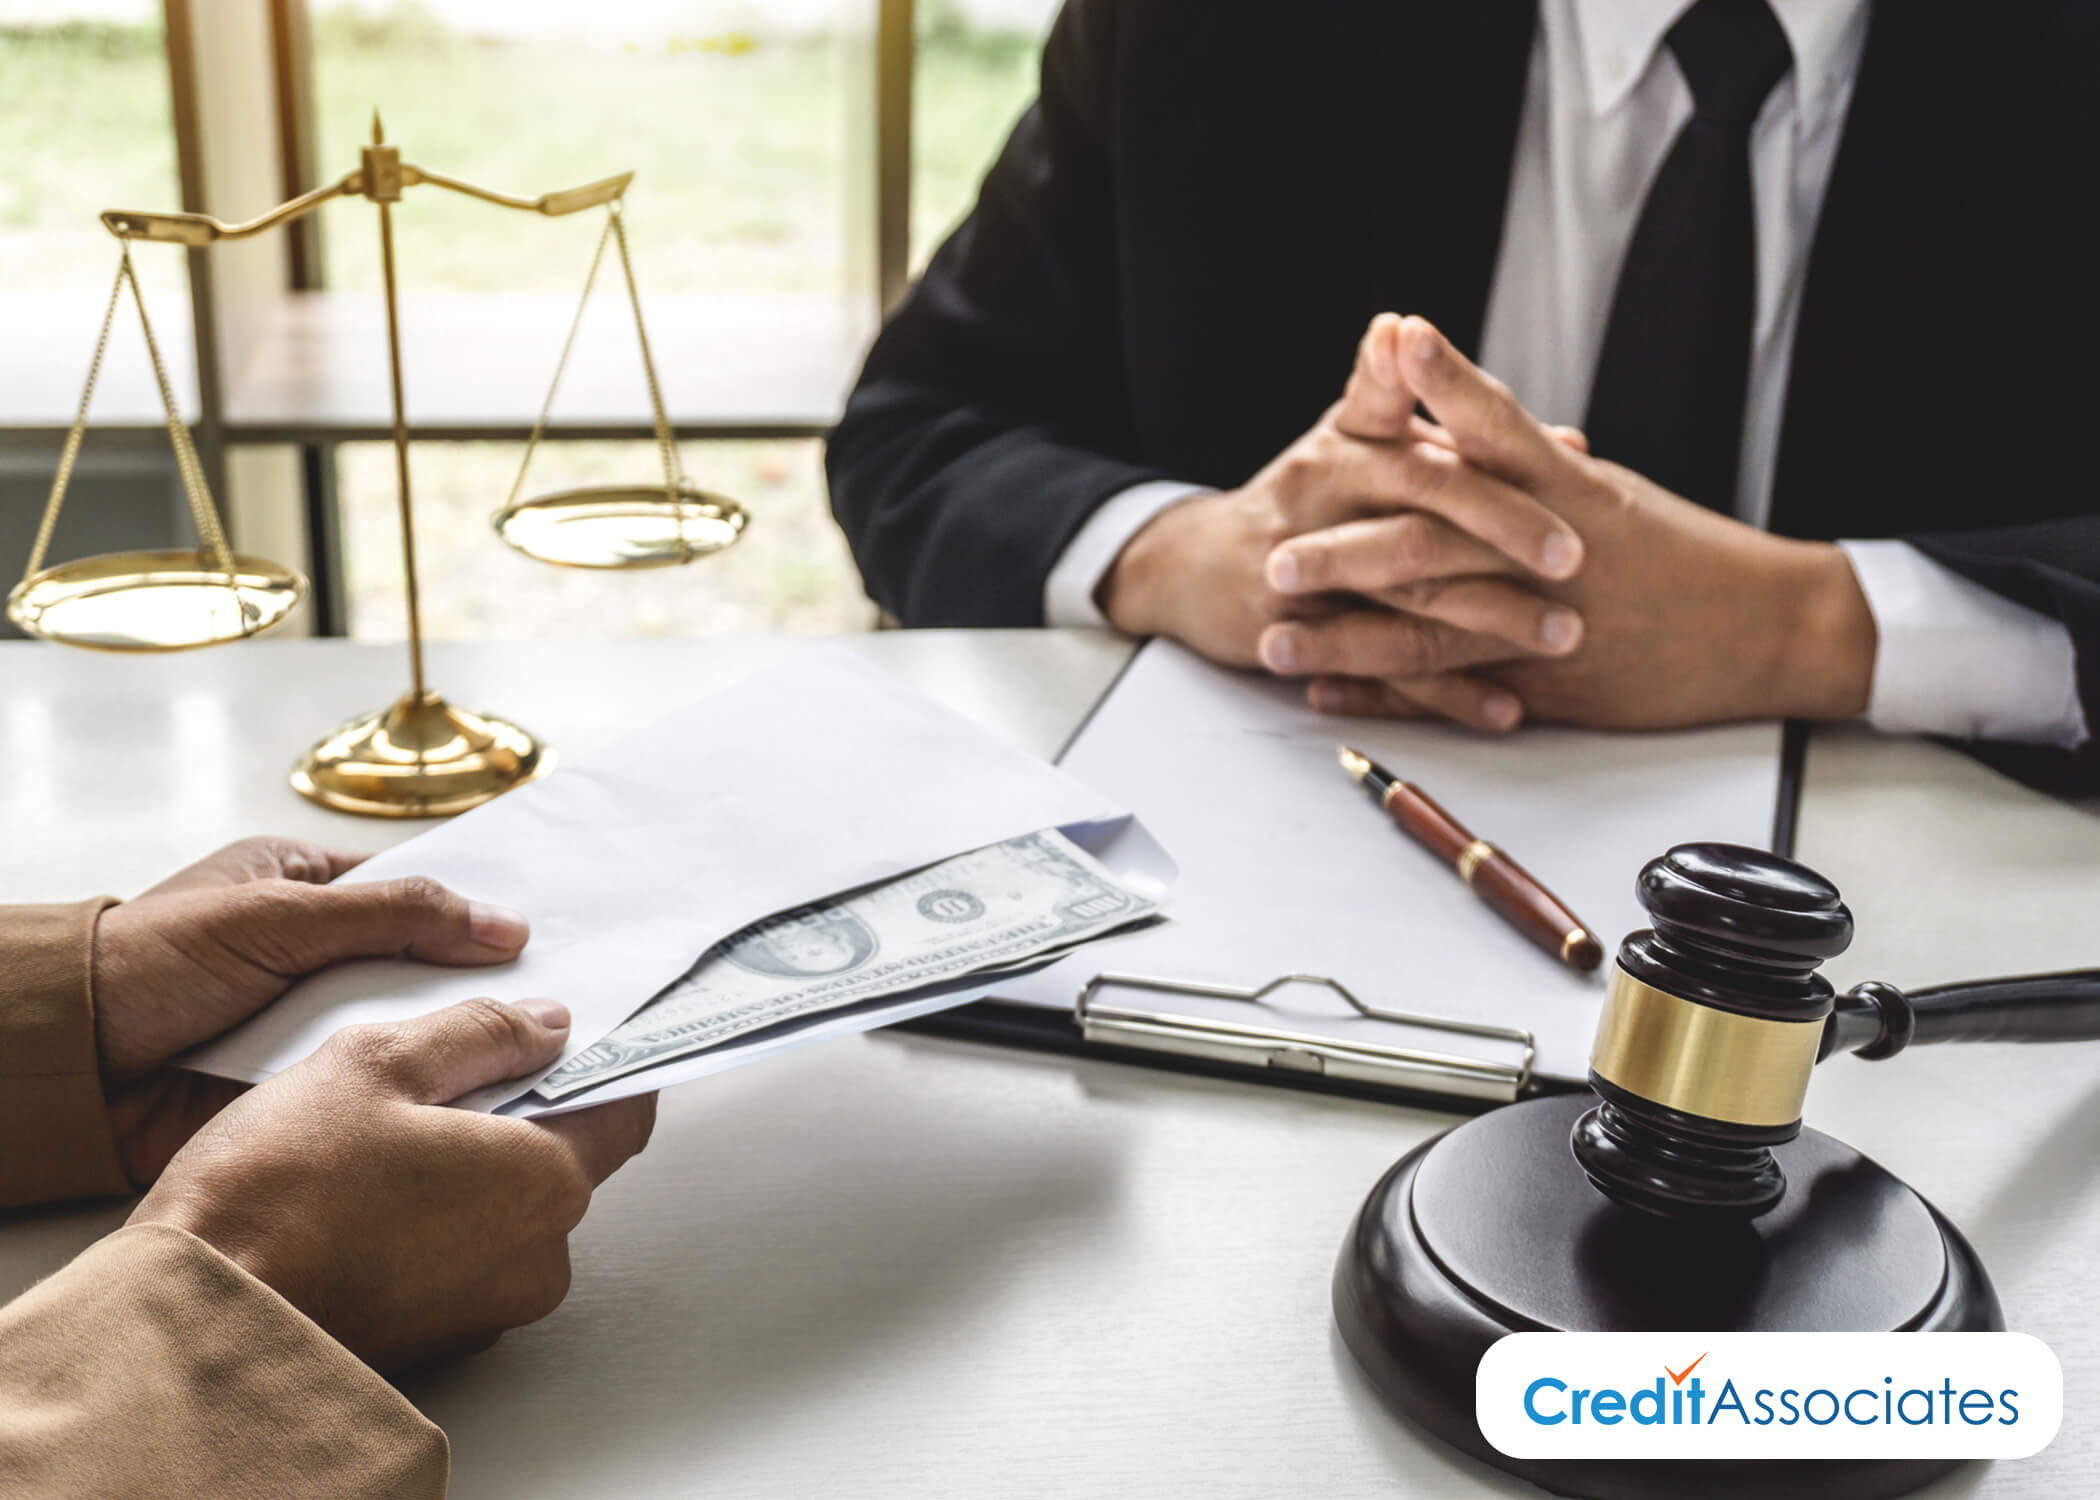 How Much Will a Lawyer Charge to Negotiate with Creditors?